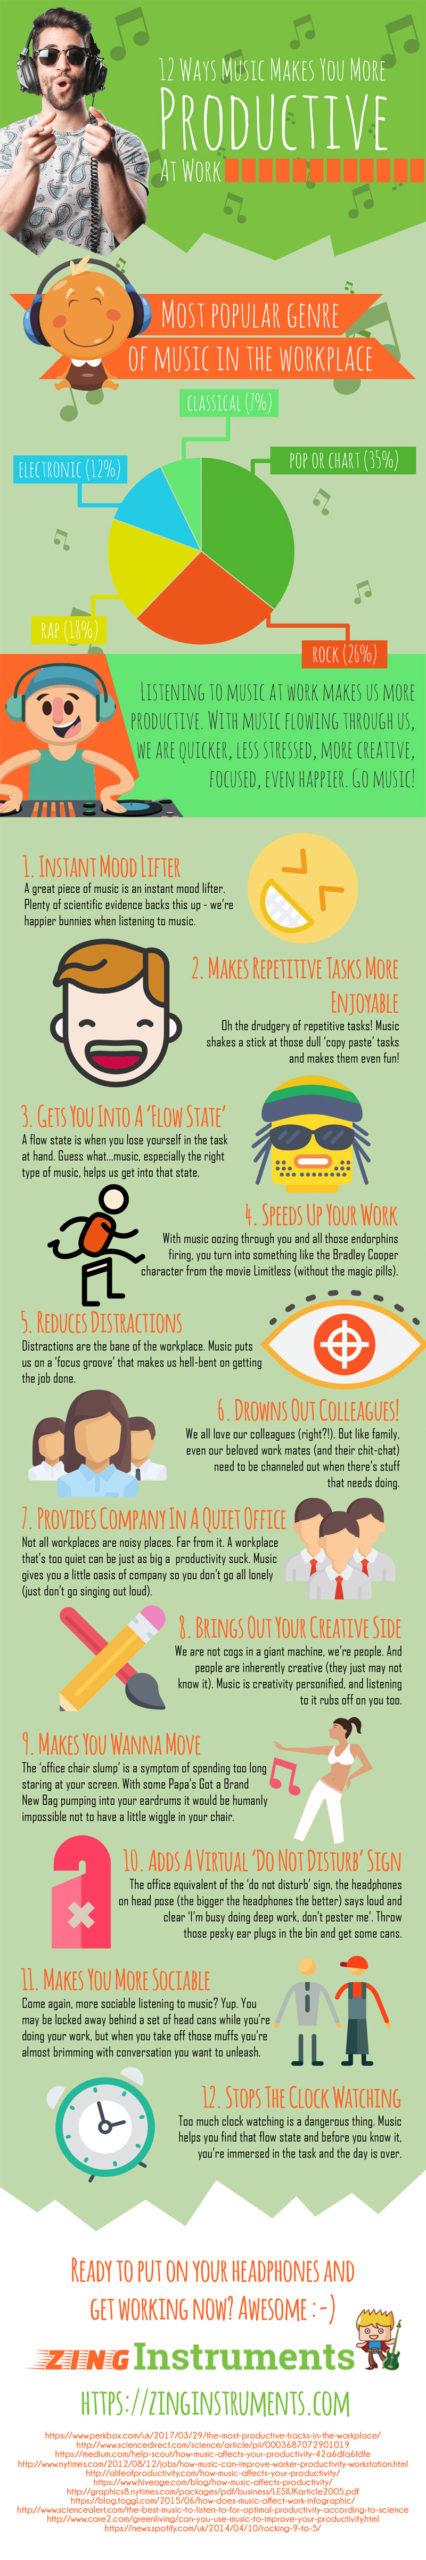 music productive work infographic